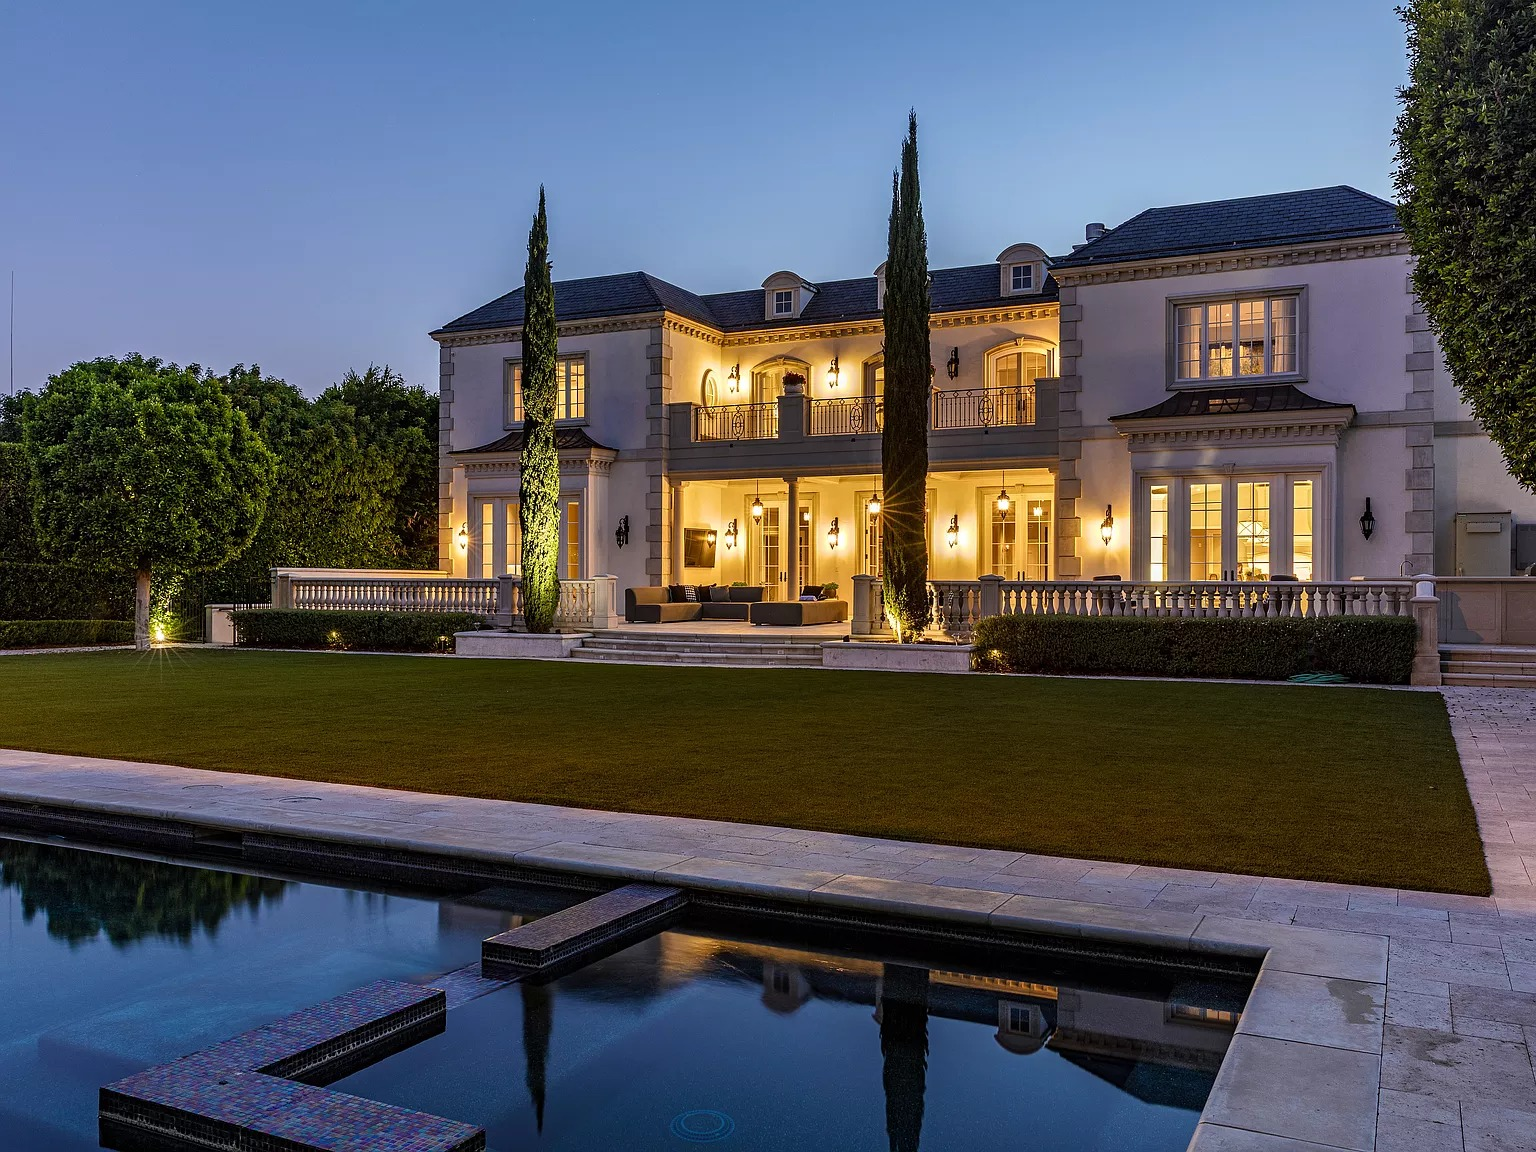 720 N Alta Dr, Beverly Hills, CA 90210 - $25,950,000 home for sale, house images, photos and pics gallery